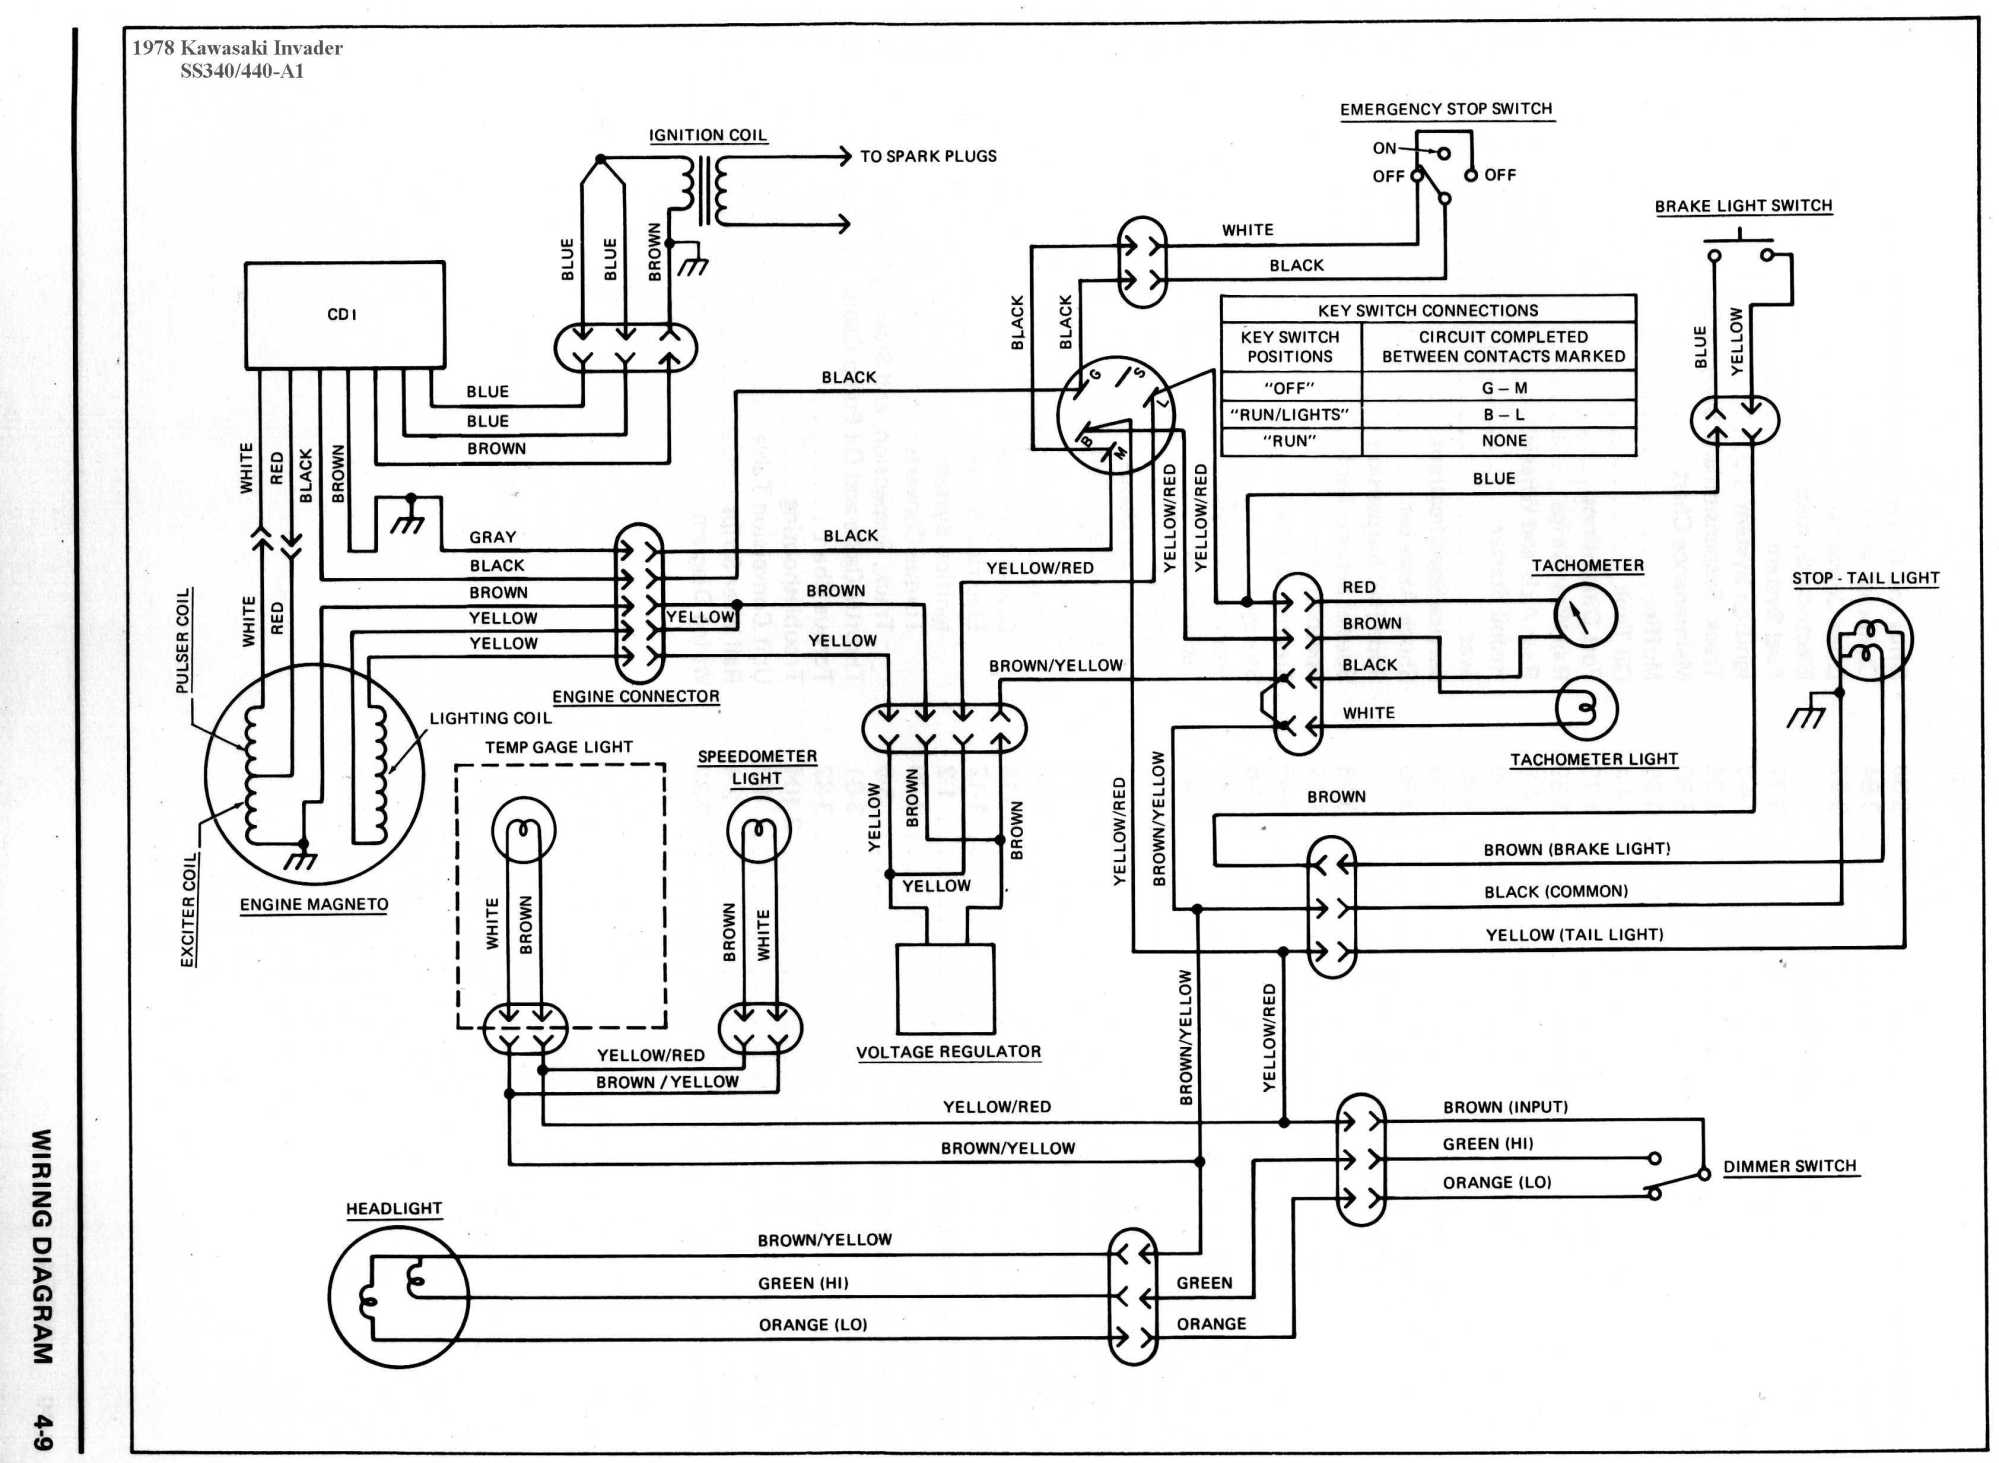 hight resolution of kawasaki 1996 wiring harness diagrams trusted wiring diagramkawasaki 1996 wiring harness diagrams schema wiring diagrams carolina